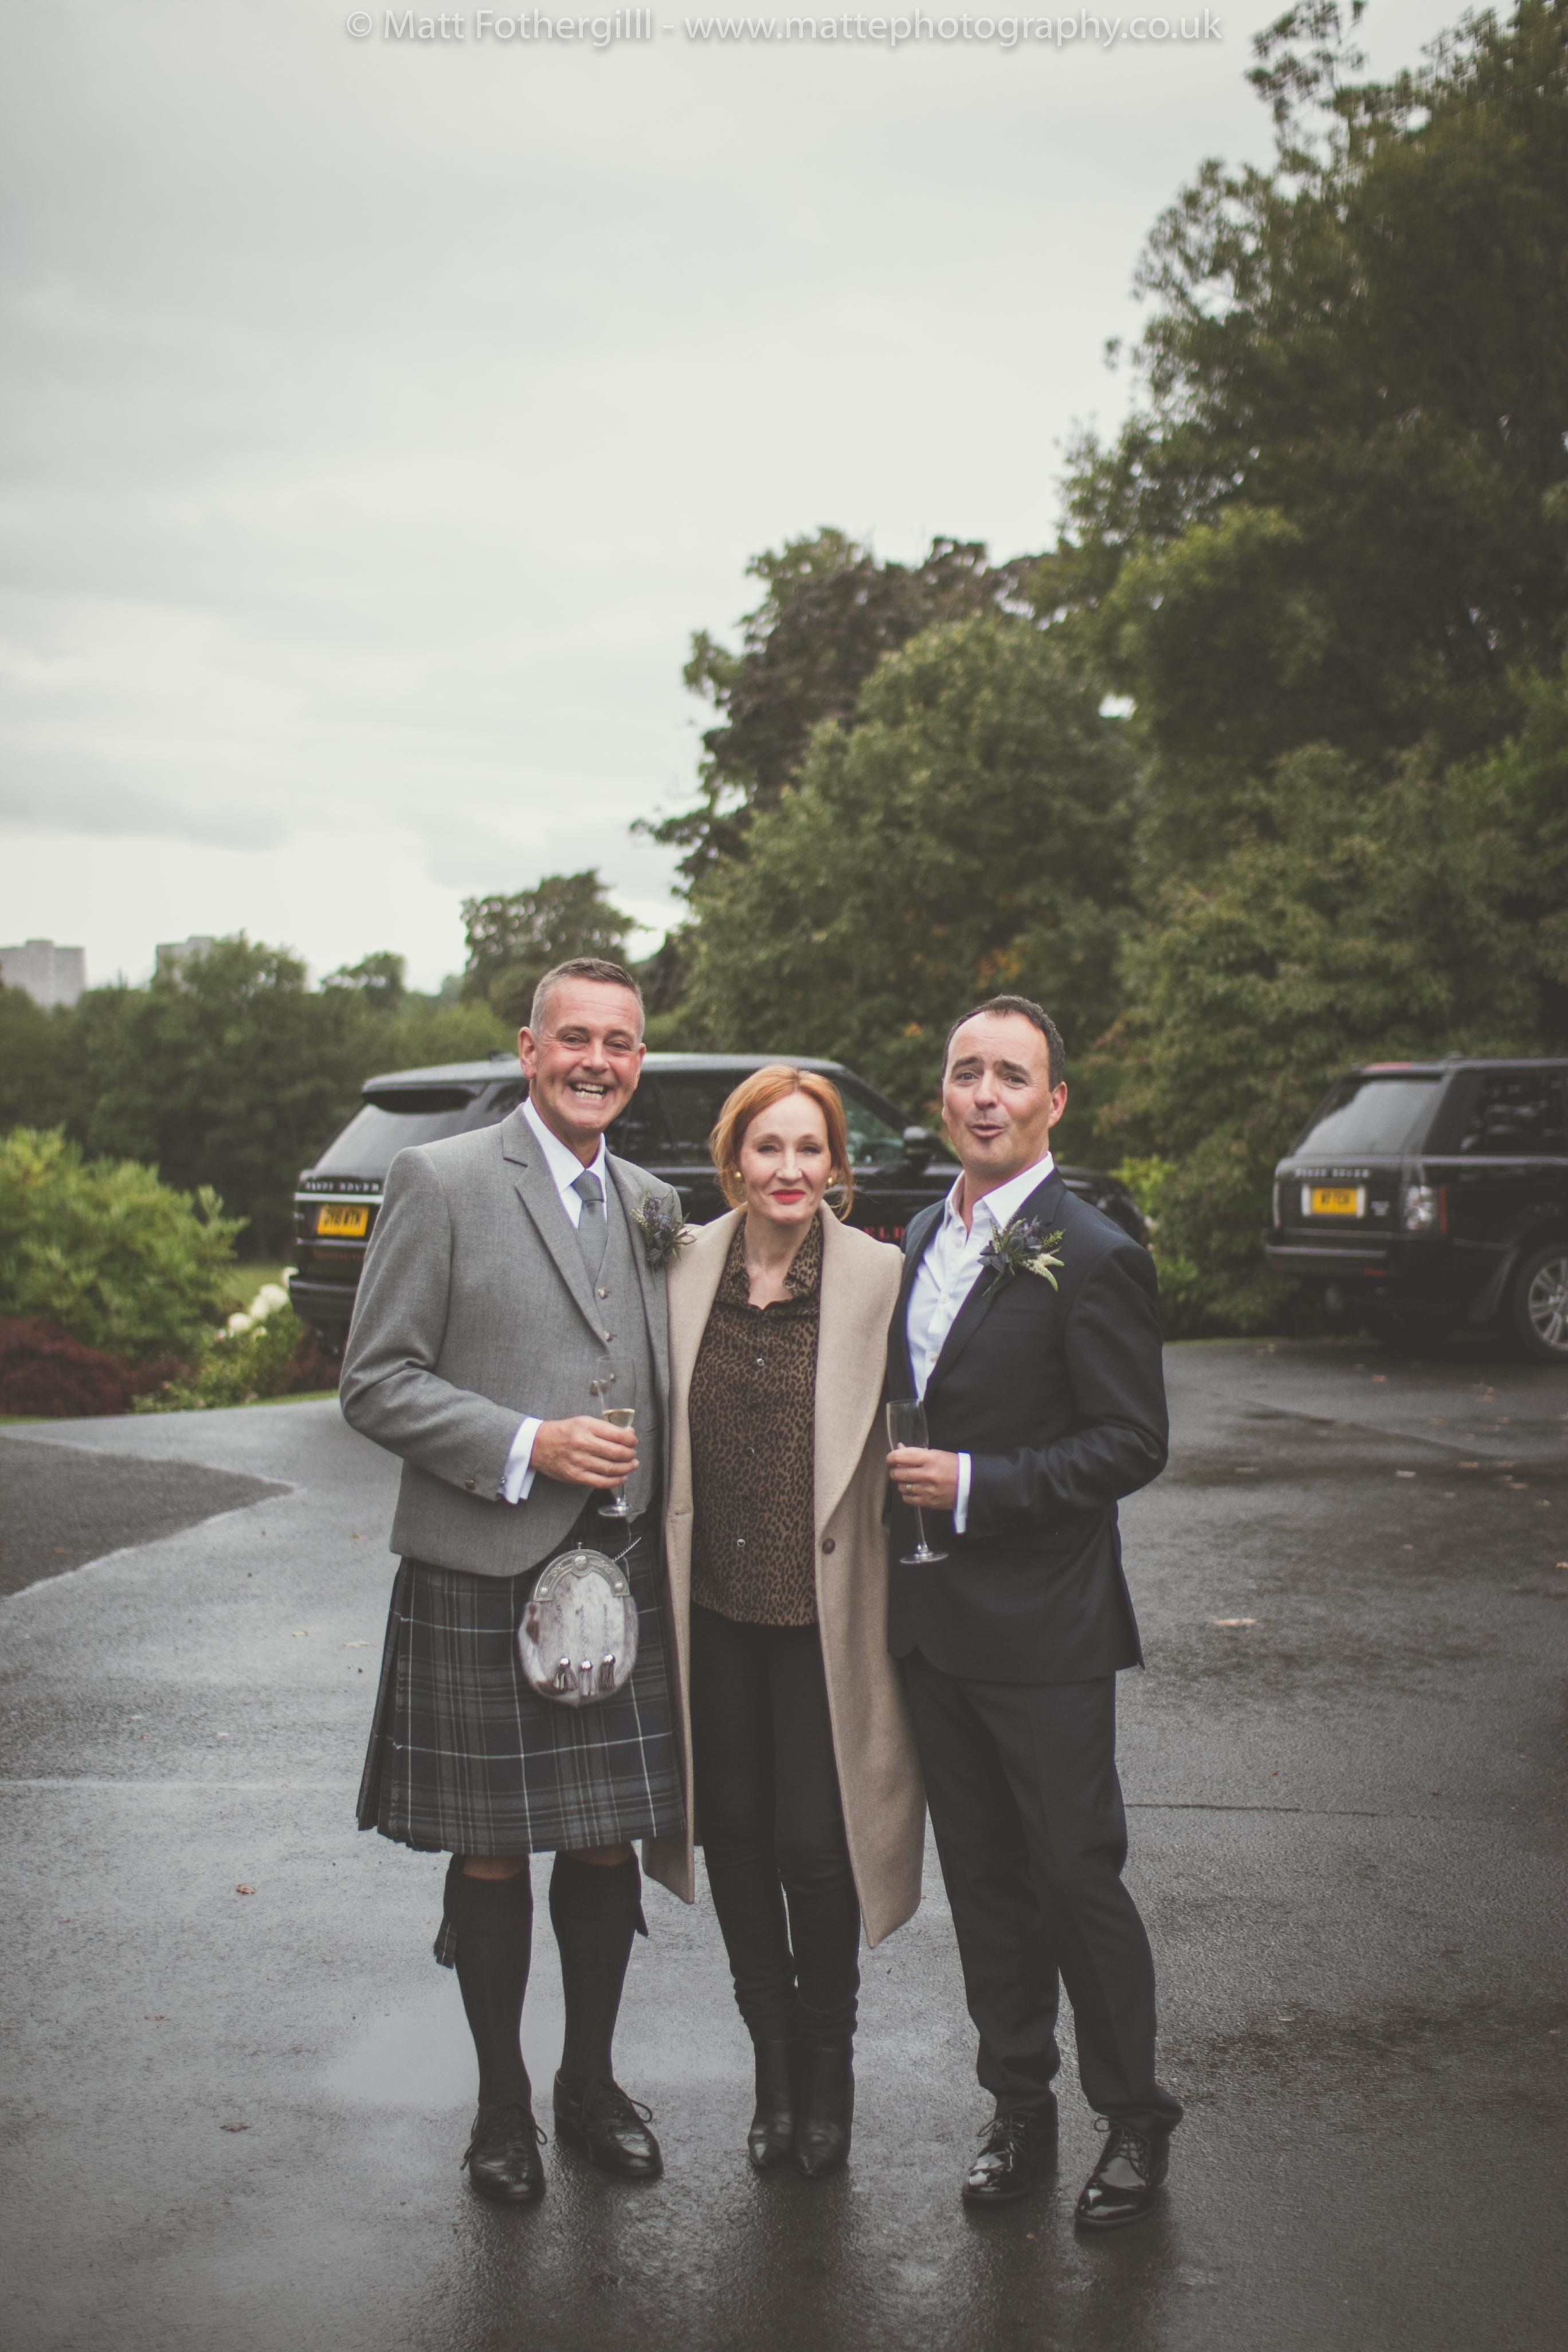 J.K. Rowling Surprises Scottish Couple By Photobombing Their